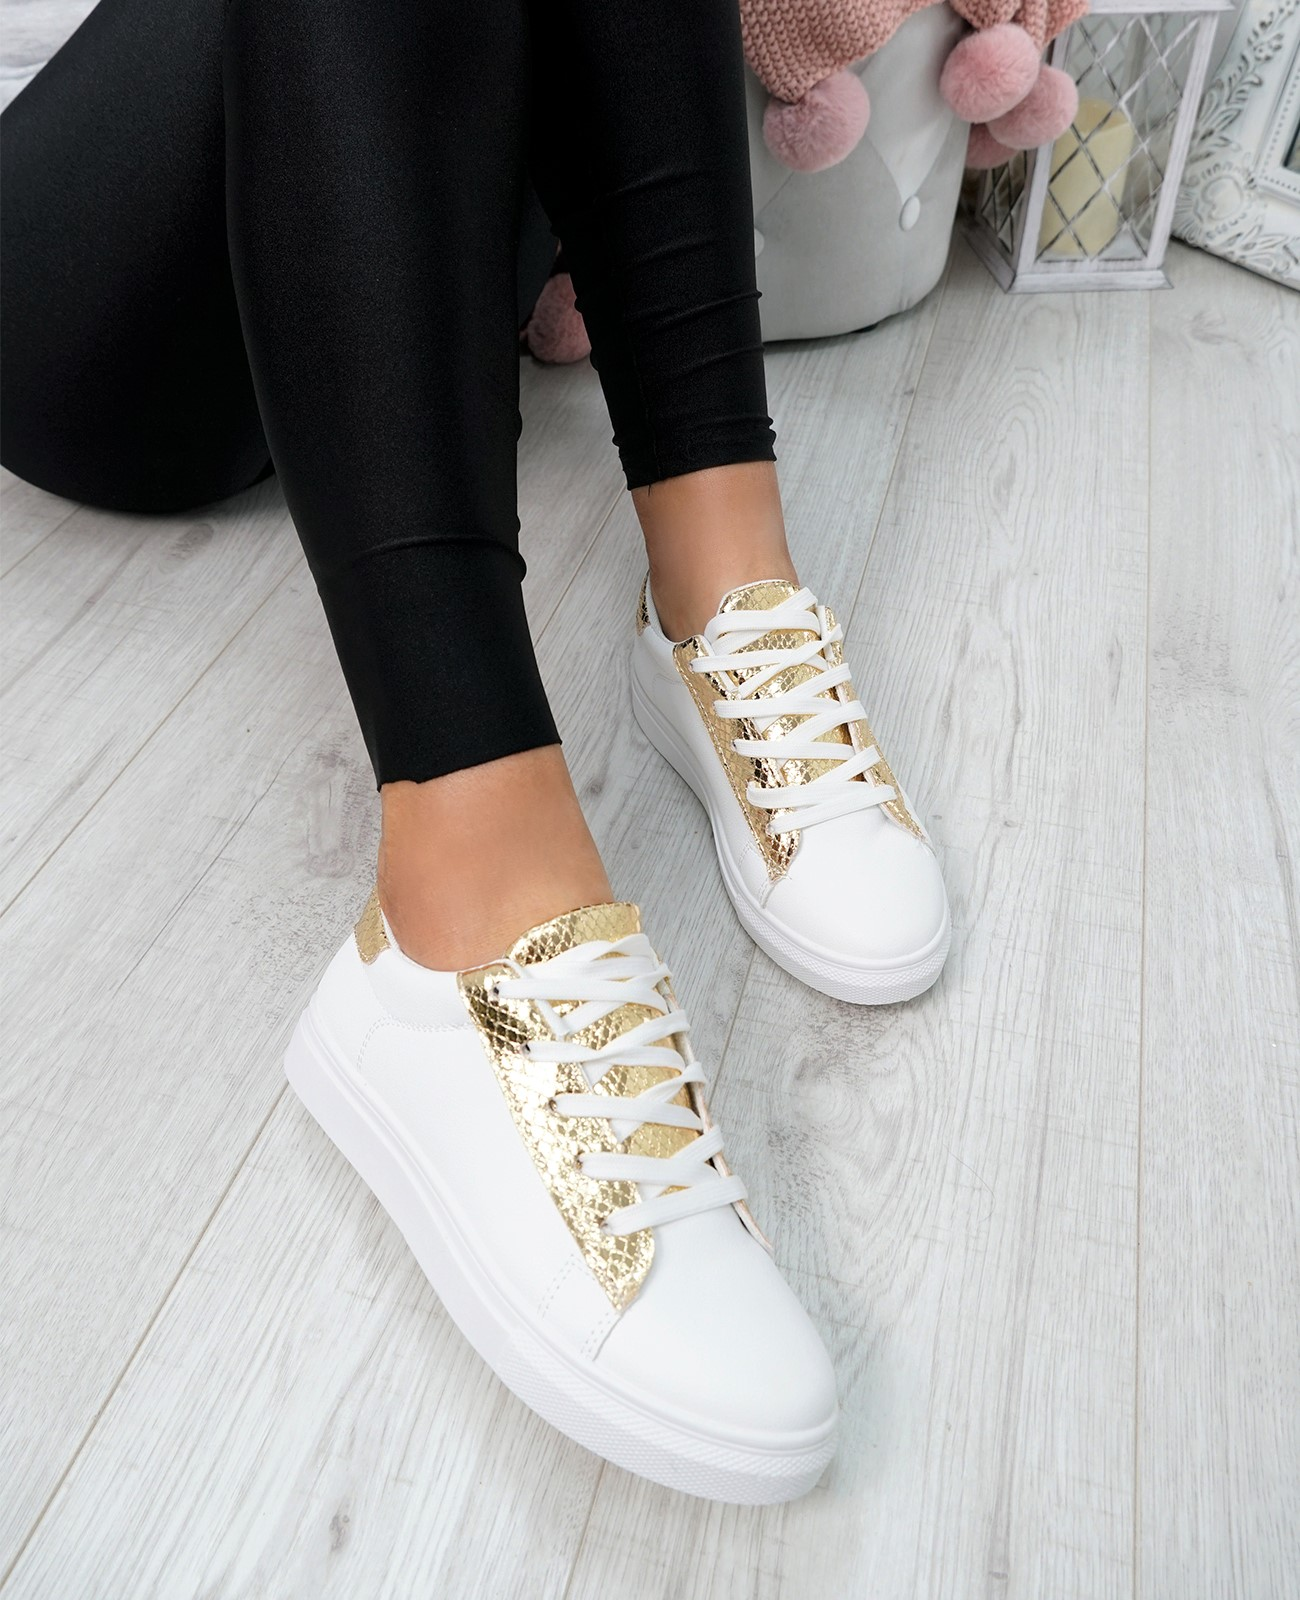 WOMENS-LADIES-SNAKE-SKIN-GLITTER-LACE-UP-TRAINERS-PLIMSOLLS-SNEAKERS-SHOES thumbnail 14